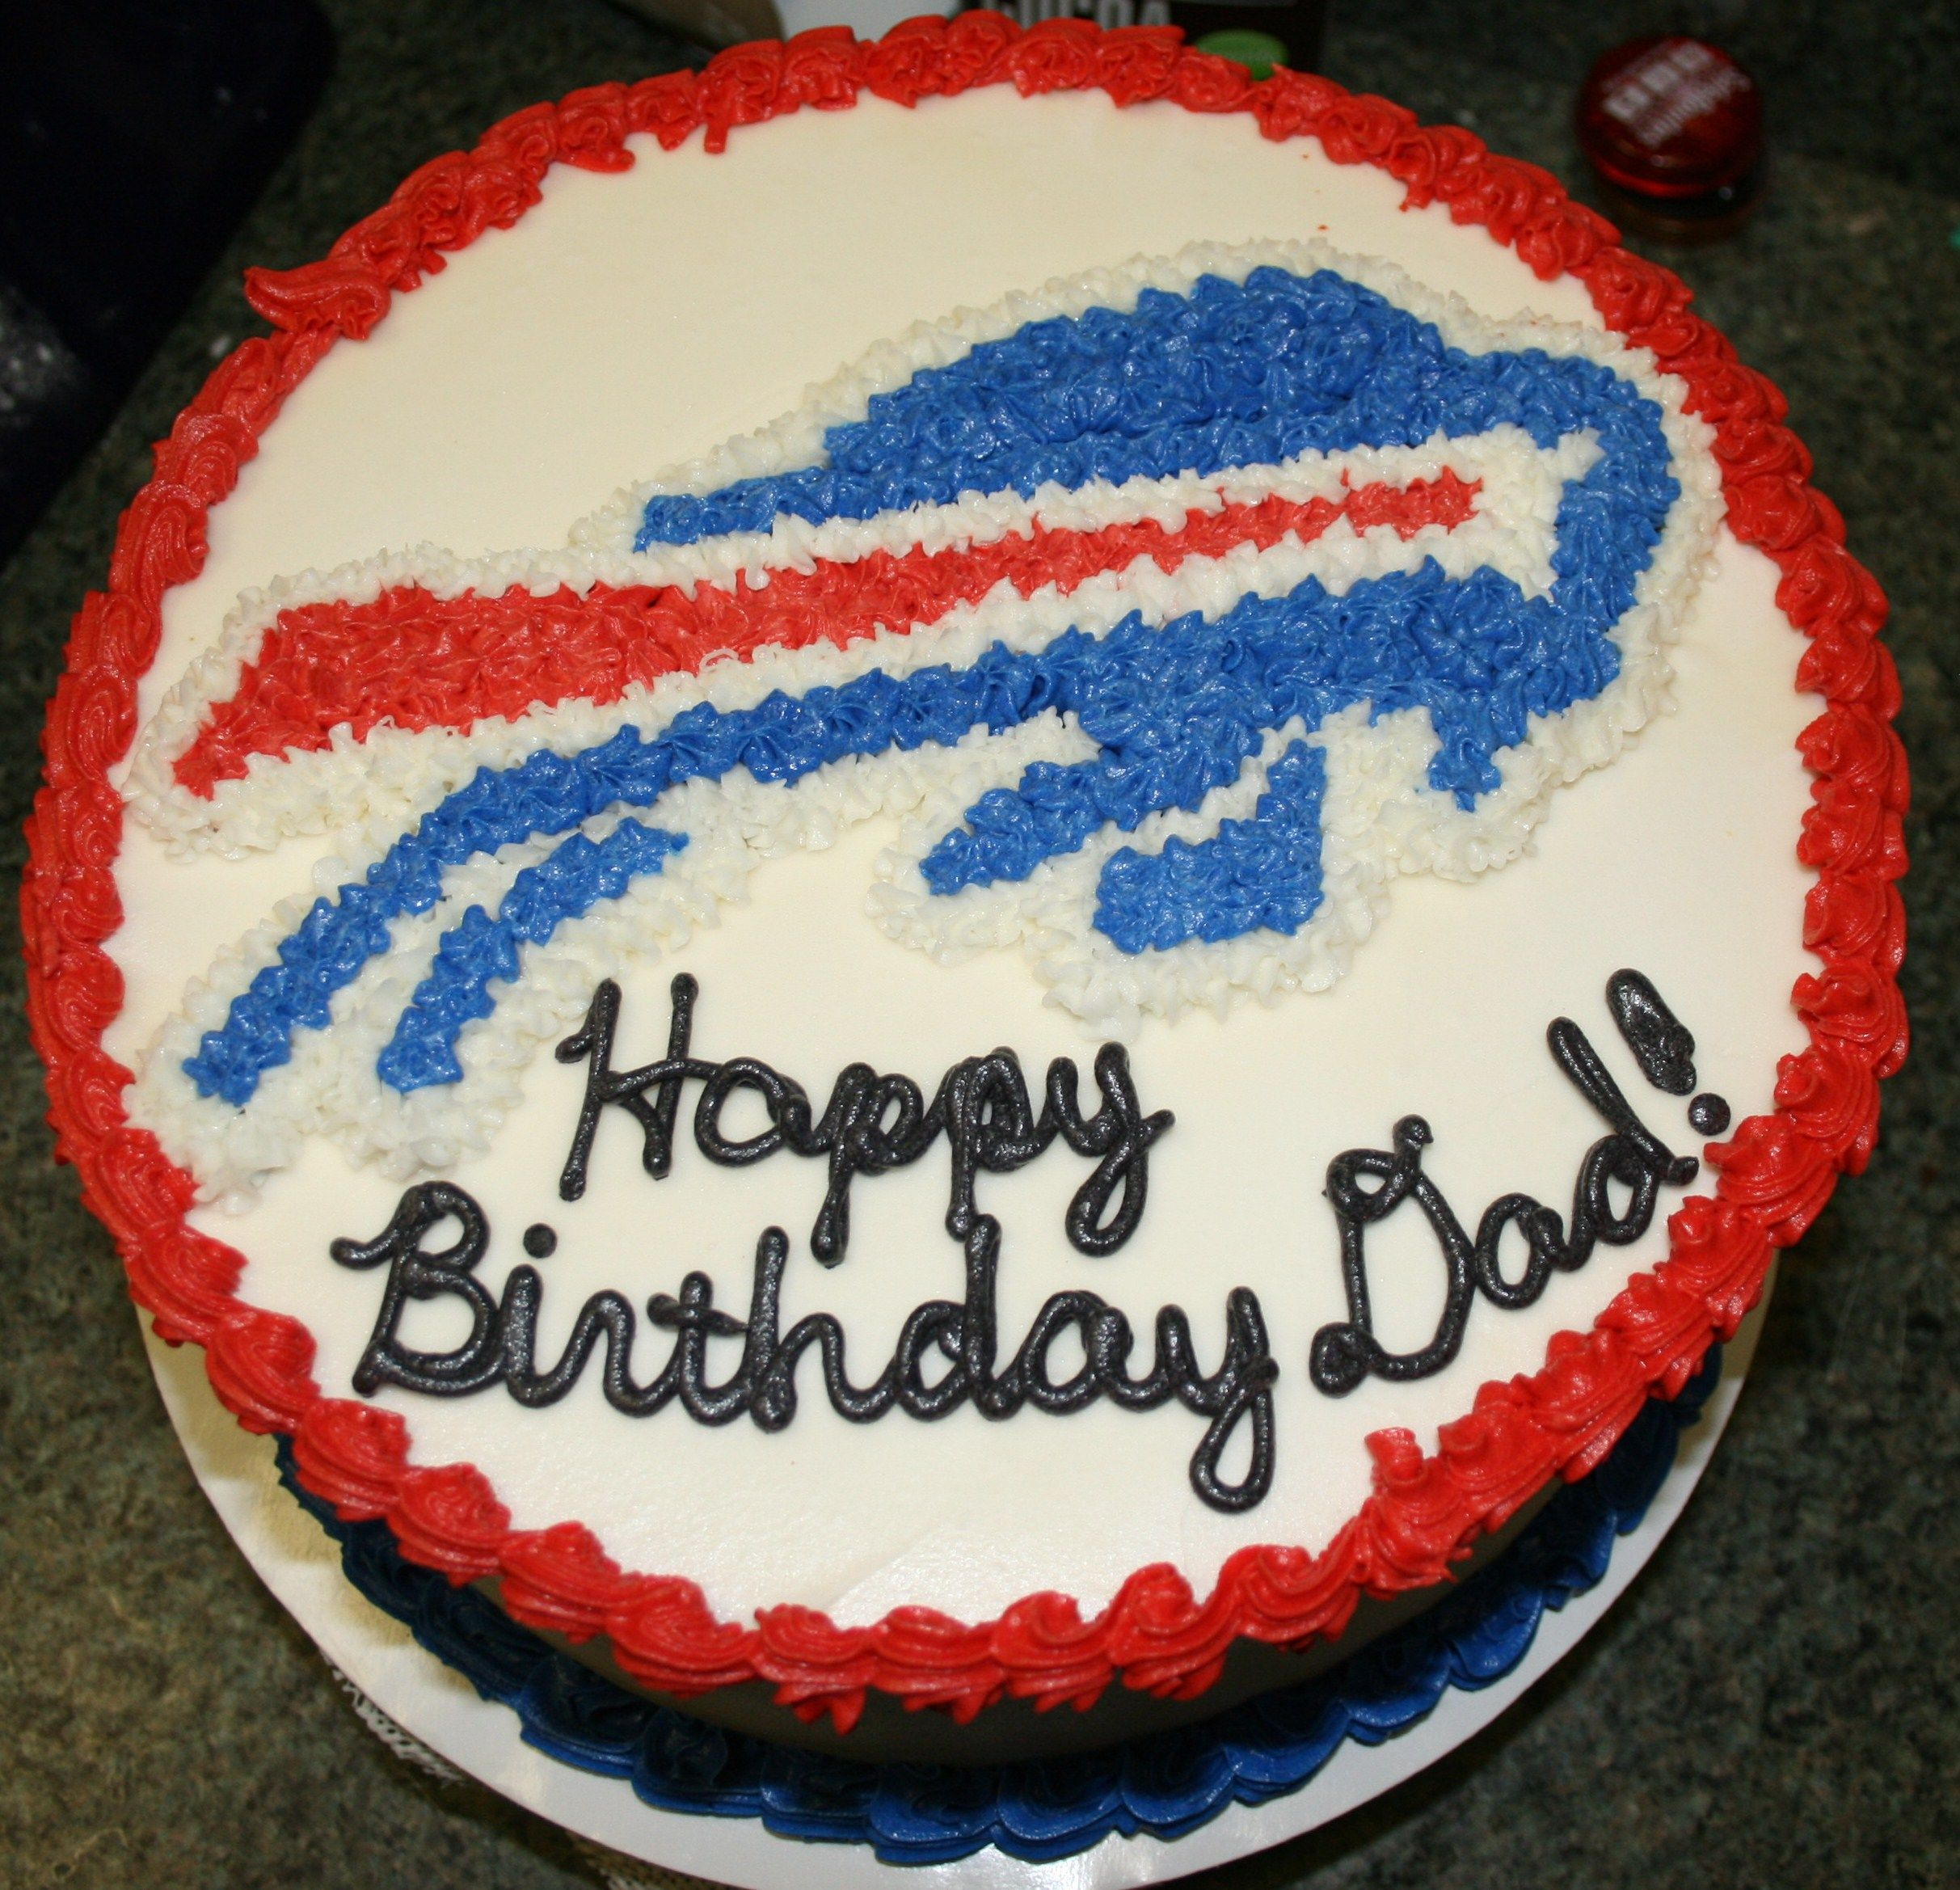 Buffalo Bills Cake Cakes Pinterest Buffalo Cake And Sport - Buffalo birthday cake